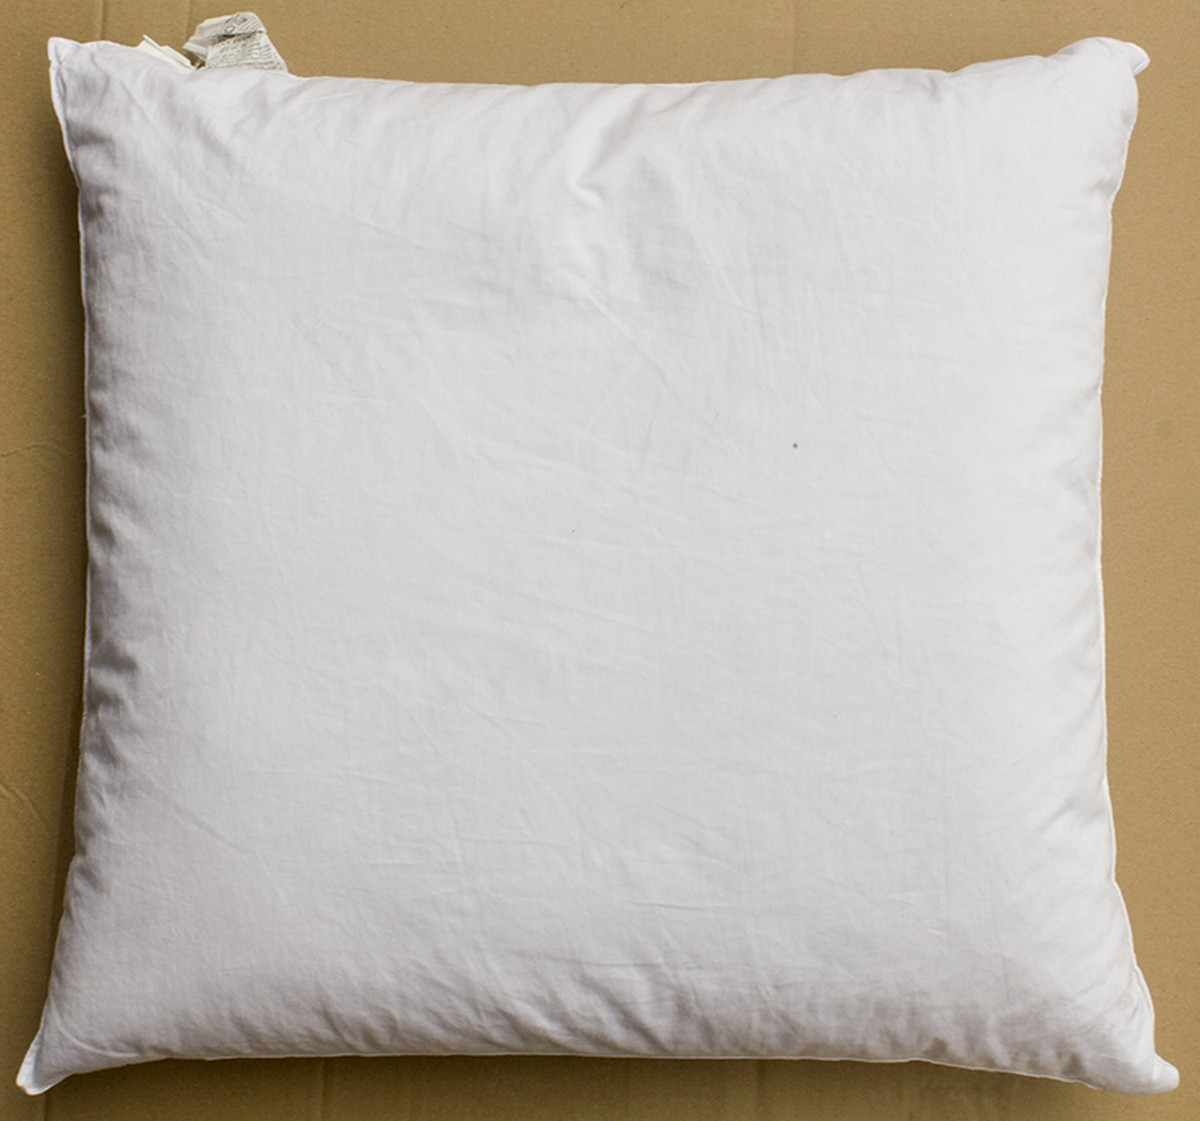 Secondhand hotel furniture bed linen euro pillow for Hotel pillows for sale philippines